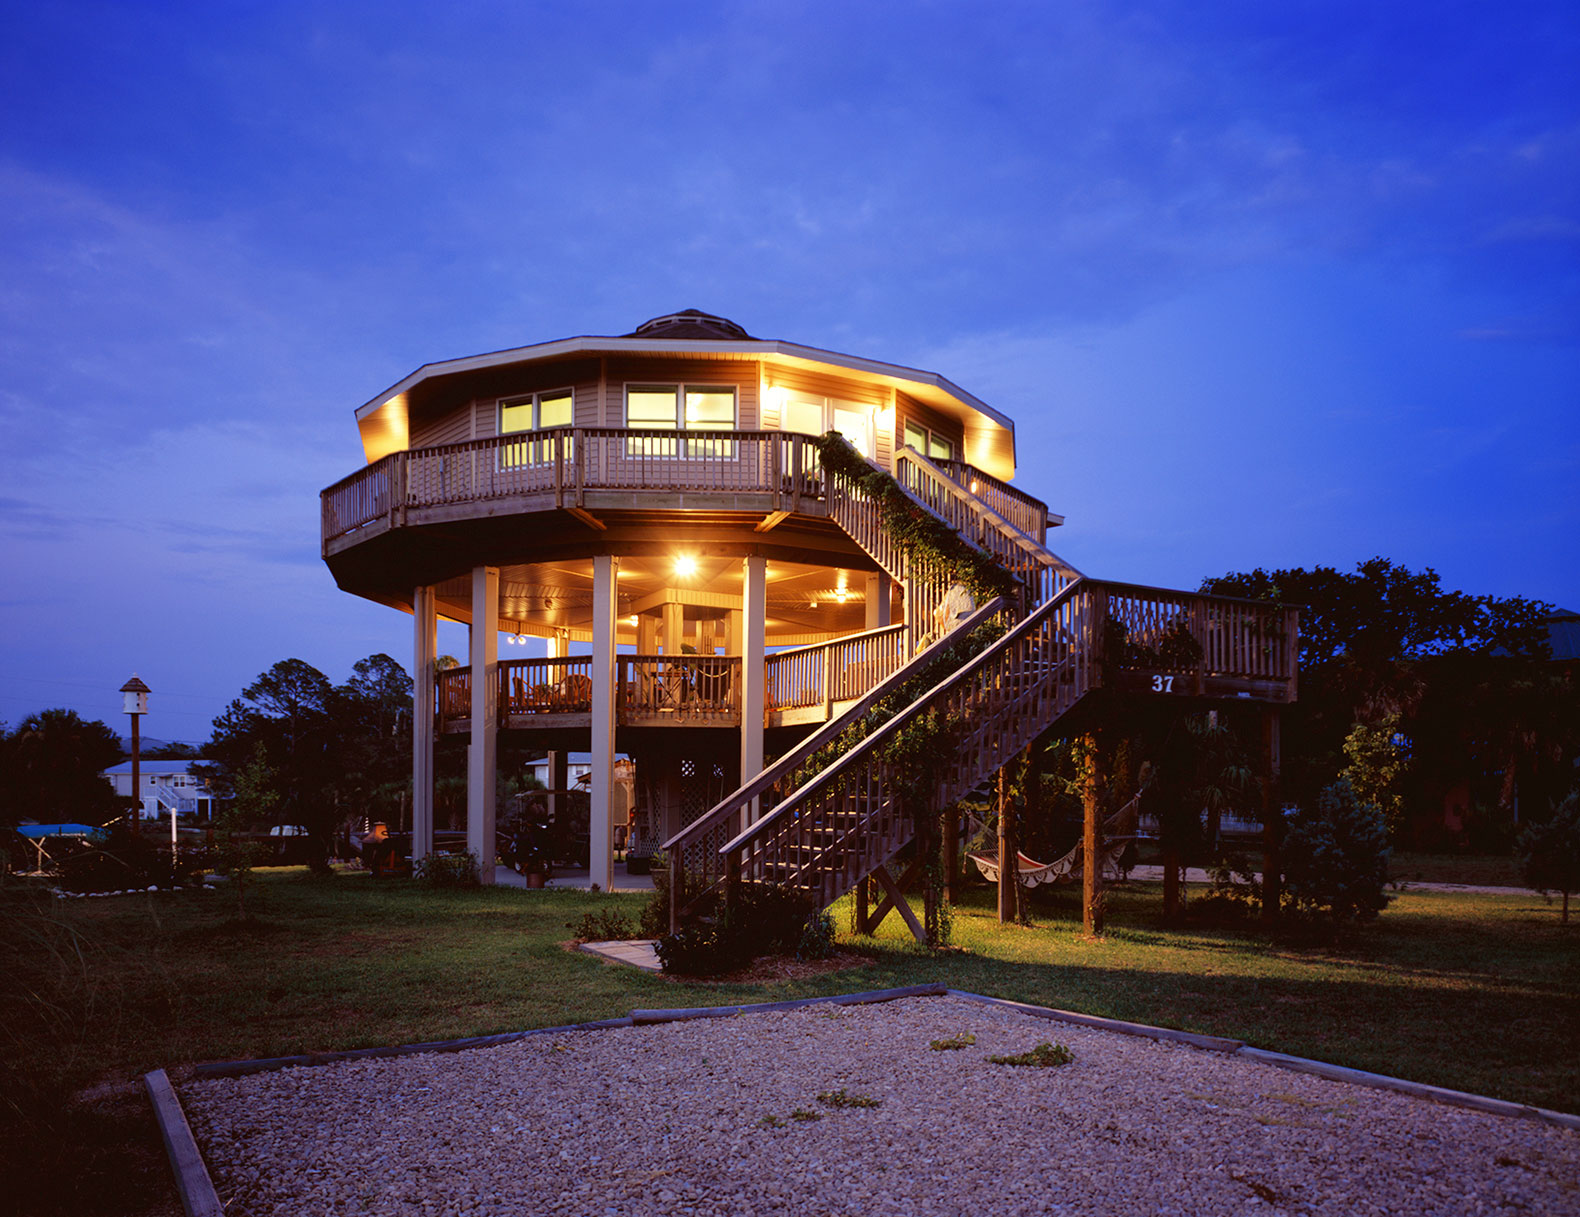 House design zero - Why These Round Houses Survive Hurricanes That Destroy Traditional Homes